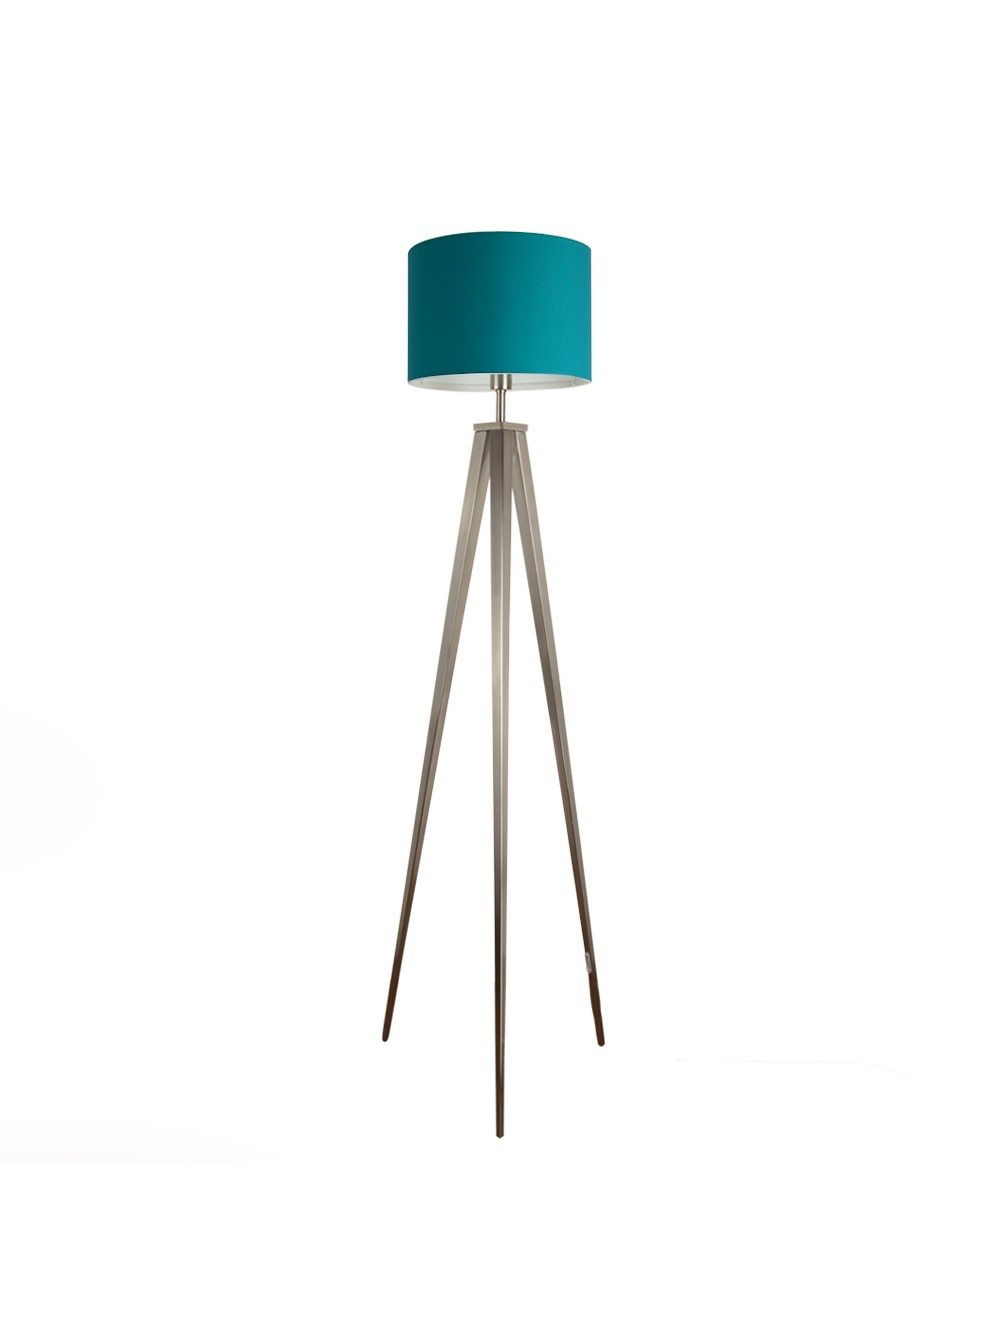 Cool Turquoise Floor Lamp